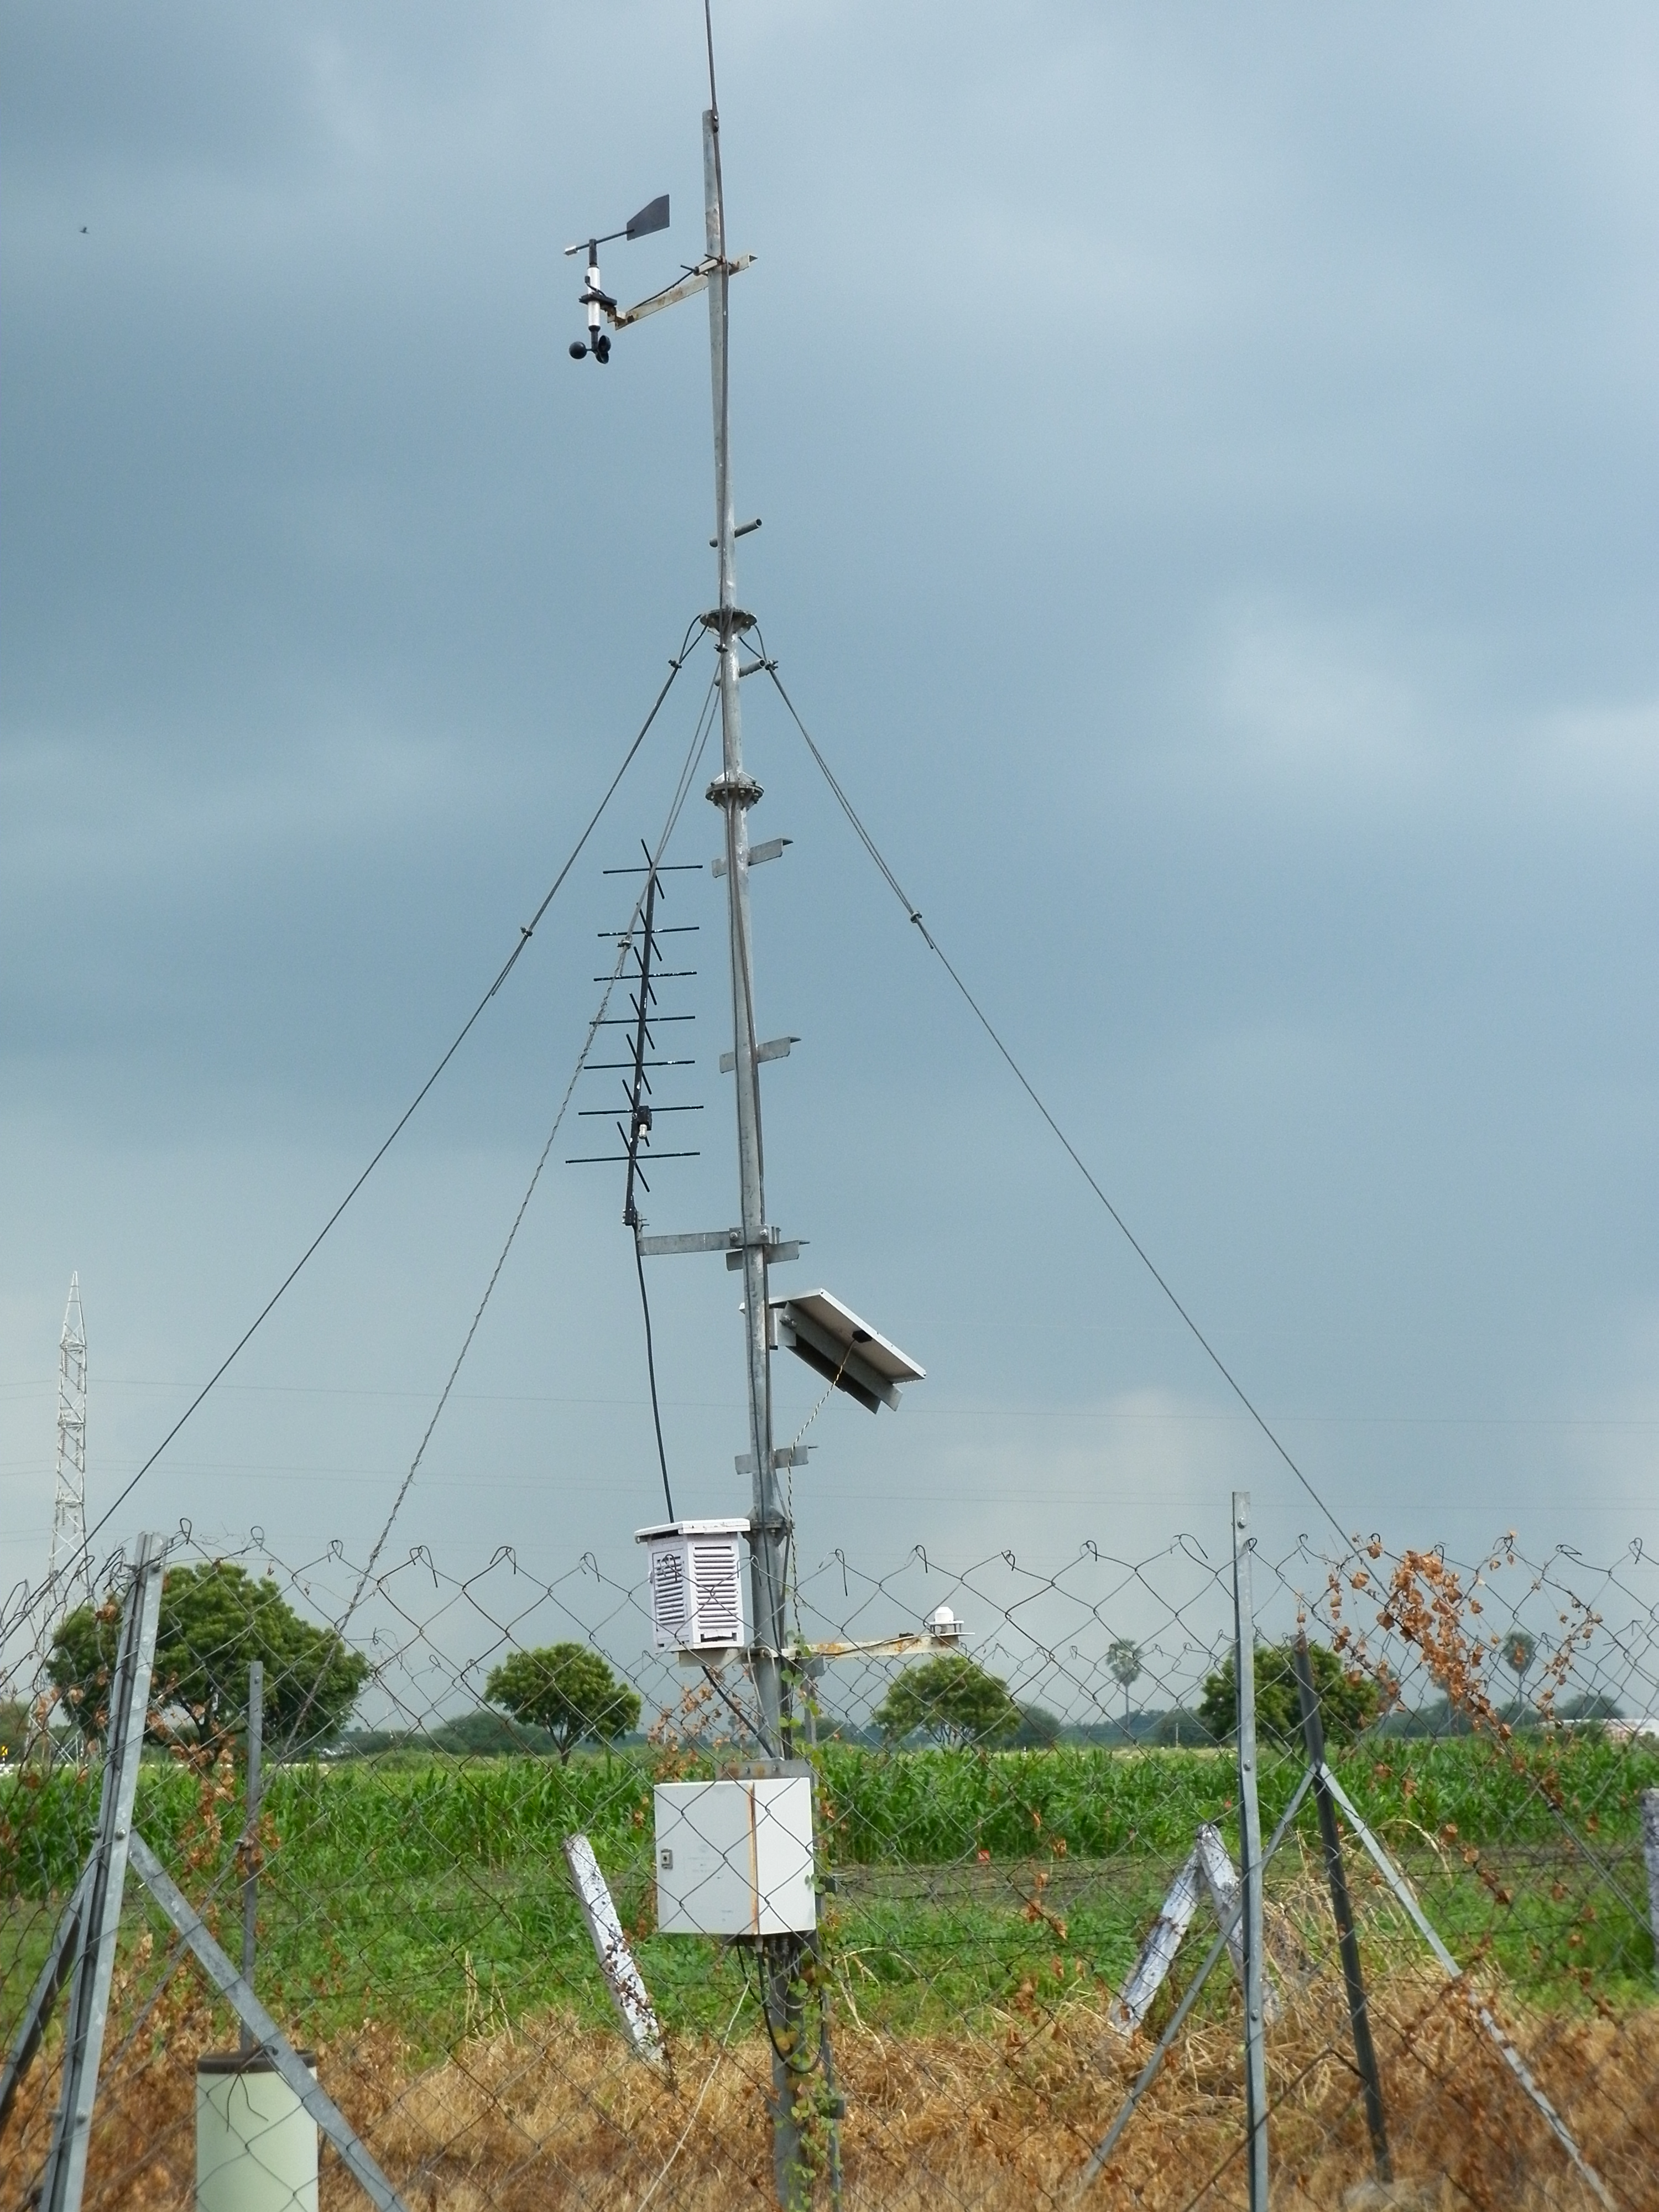 Description aws automatic weather station jpg